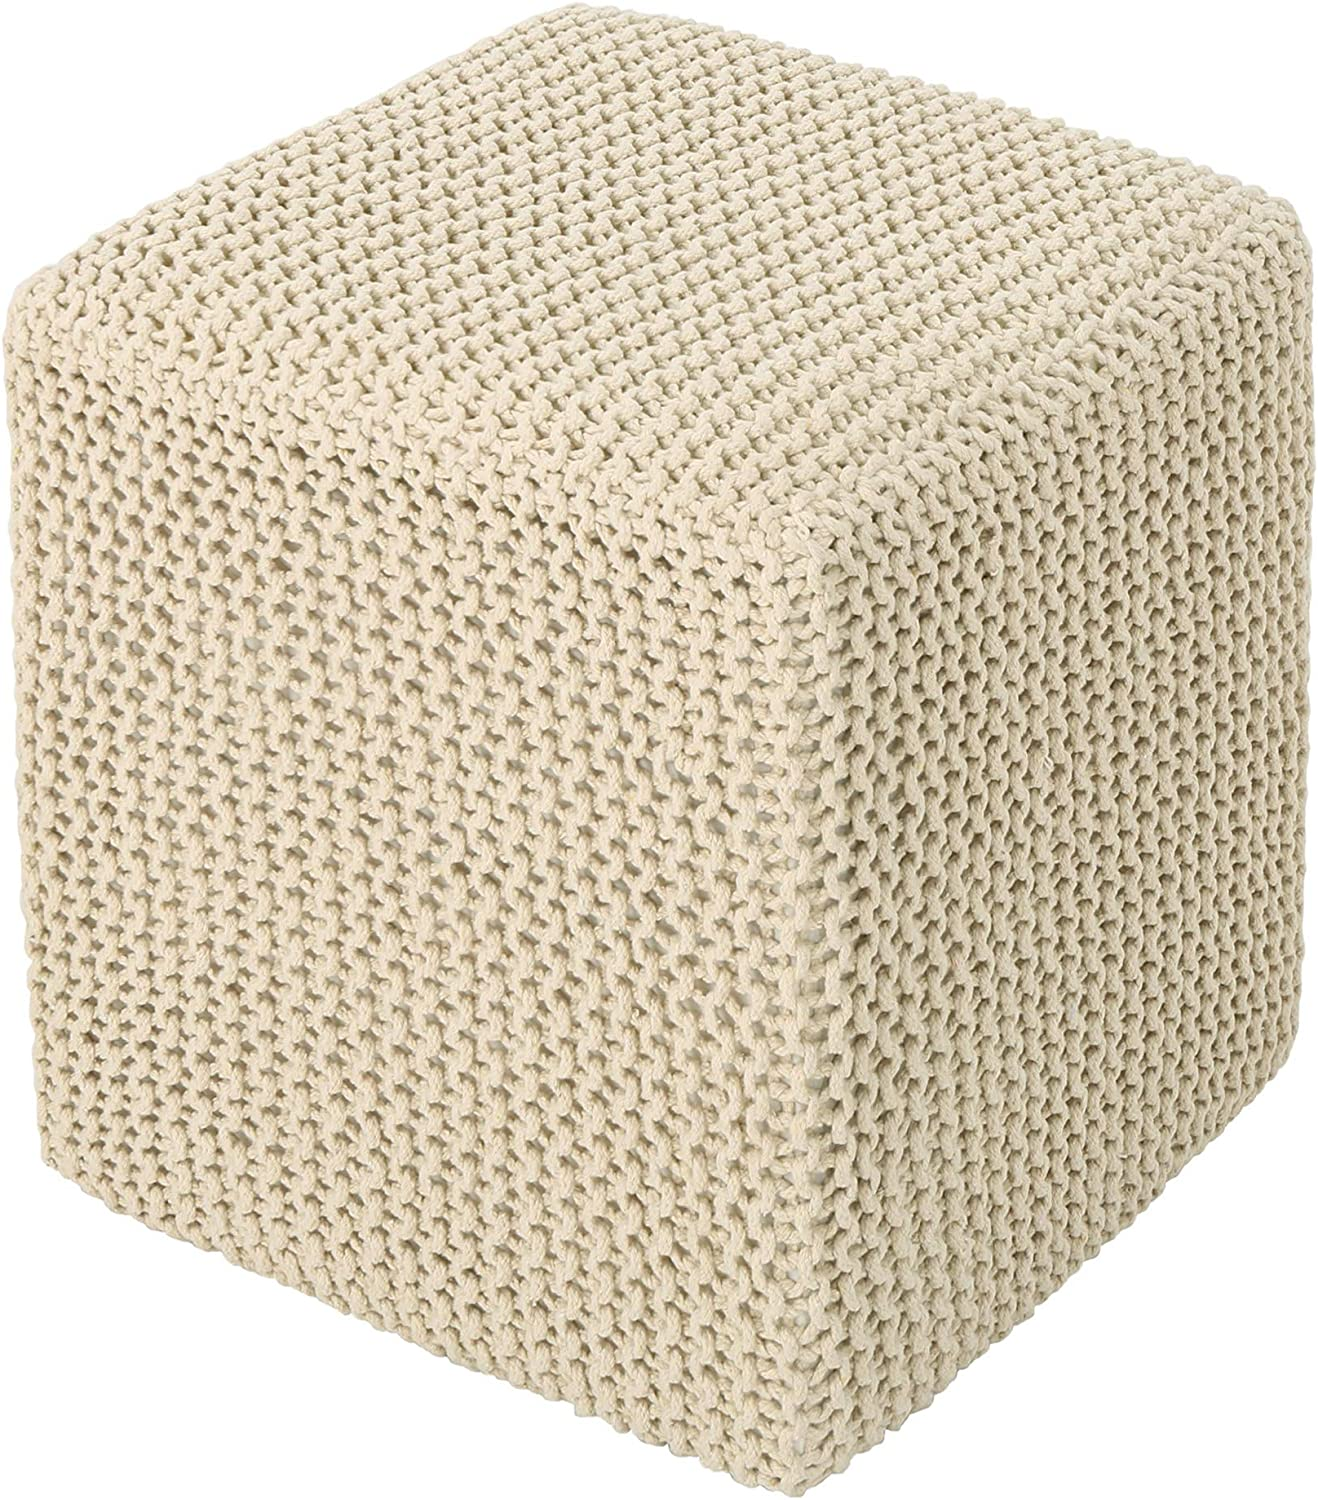 Christopher Knight Home Scott Stool Popular overseas Foot New mail order Knitted Beige